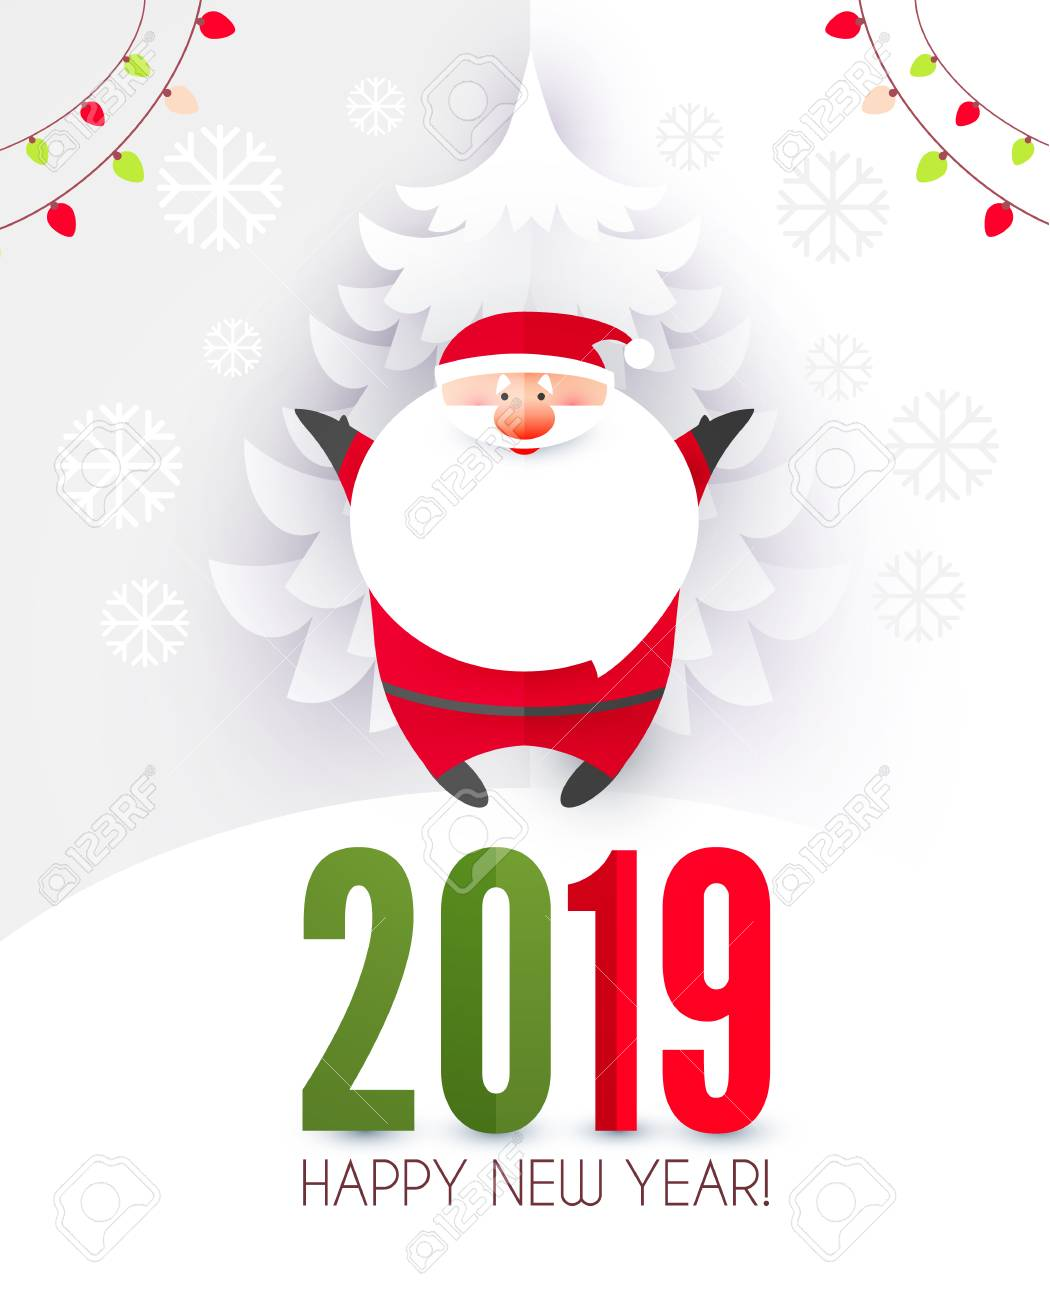 Christmas Graphics 2019.Happy Ner 2019 Year Christmas Design Template With Santa Claus